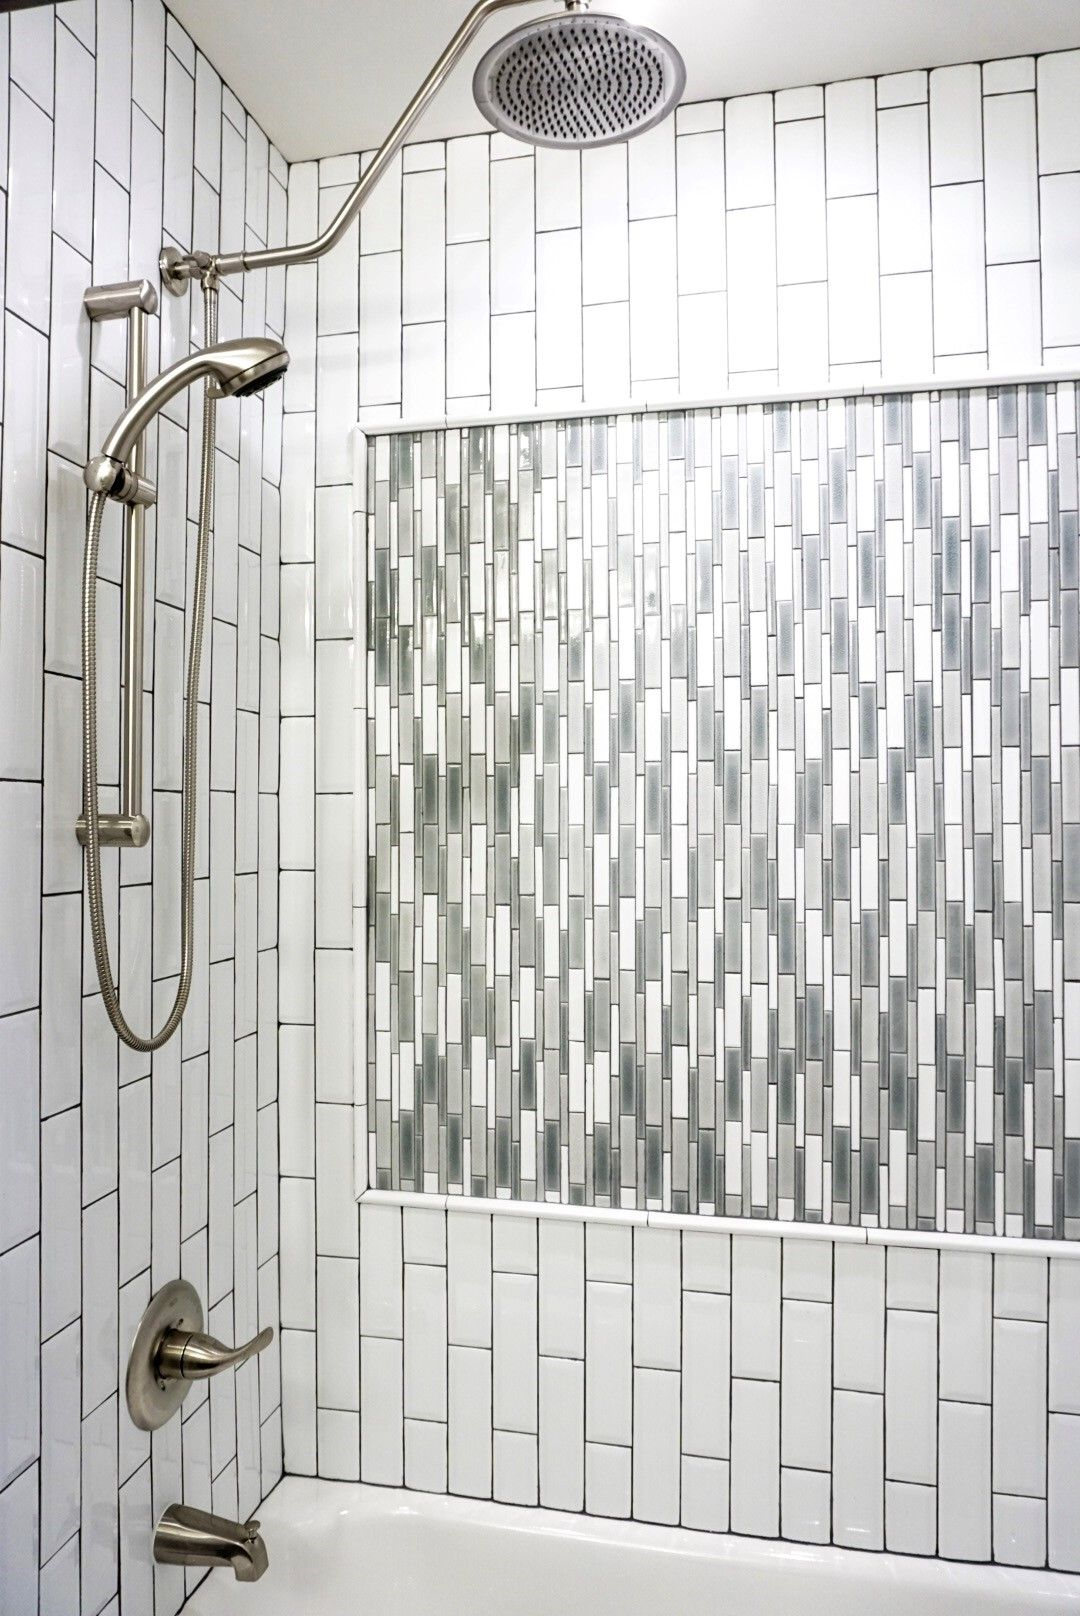 Oversized 10 Inch Diameter Stainless Rainfall Shower Head With 260